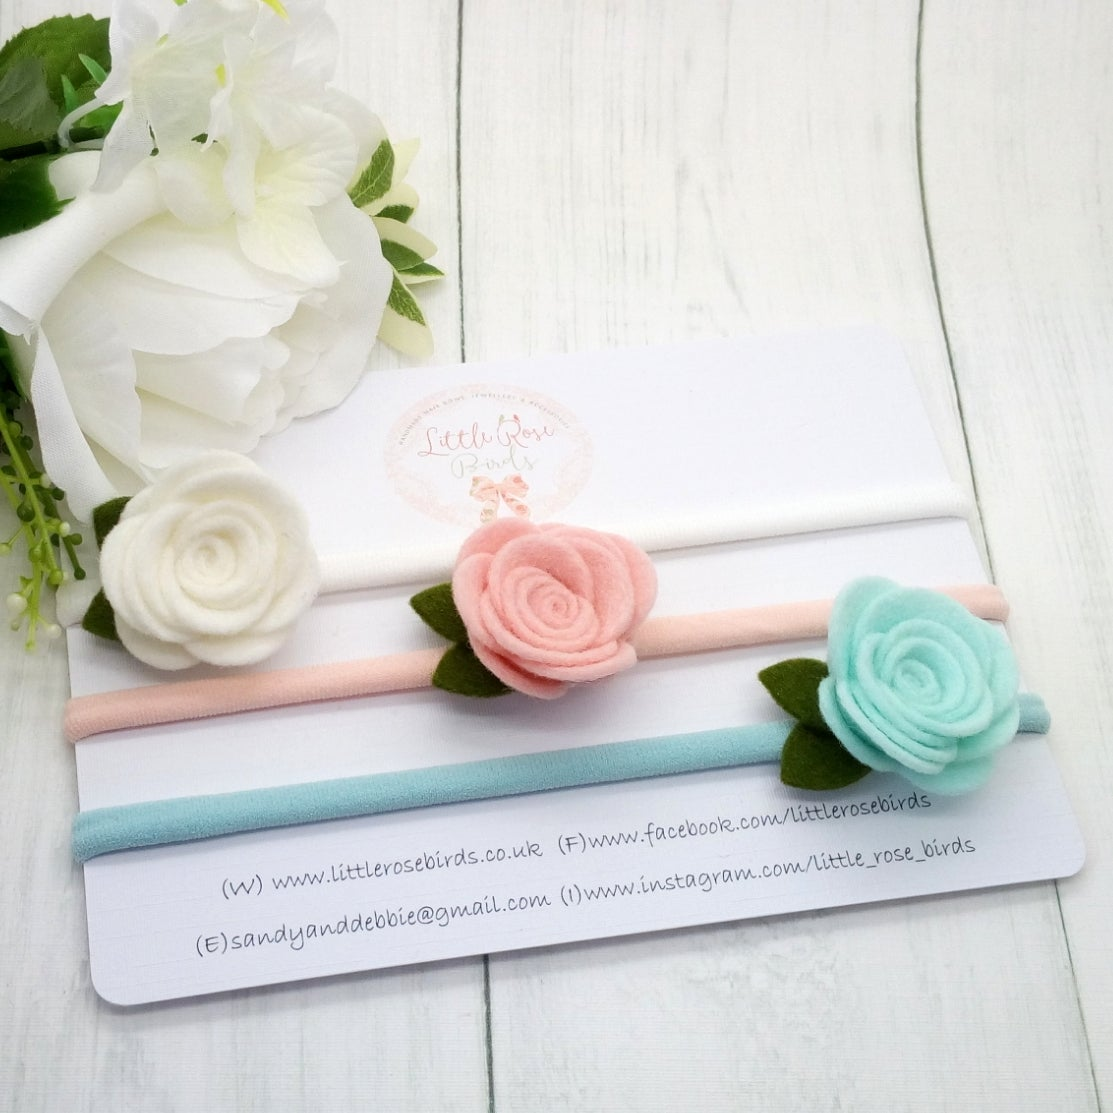 Image of SET OF 3 White/Blush/Spearmint Medium Rose Clips or Headbands